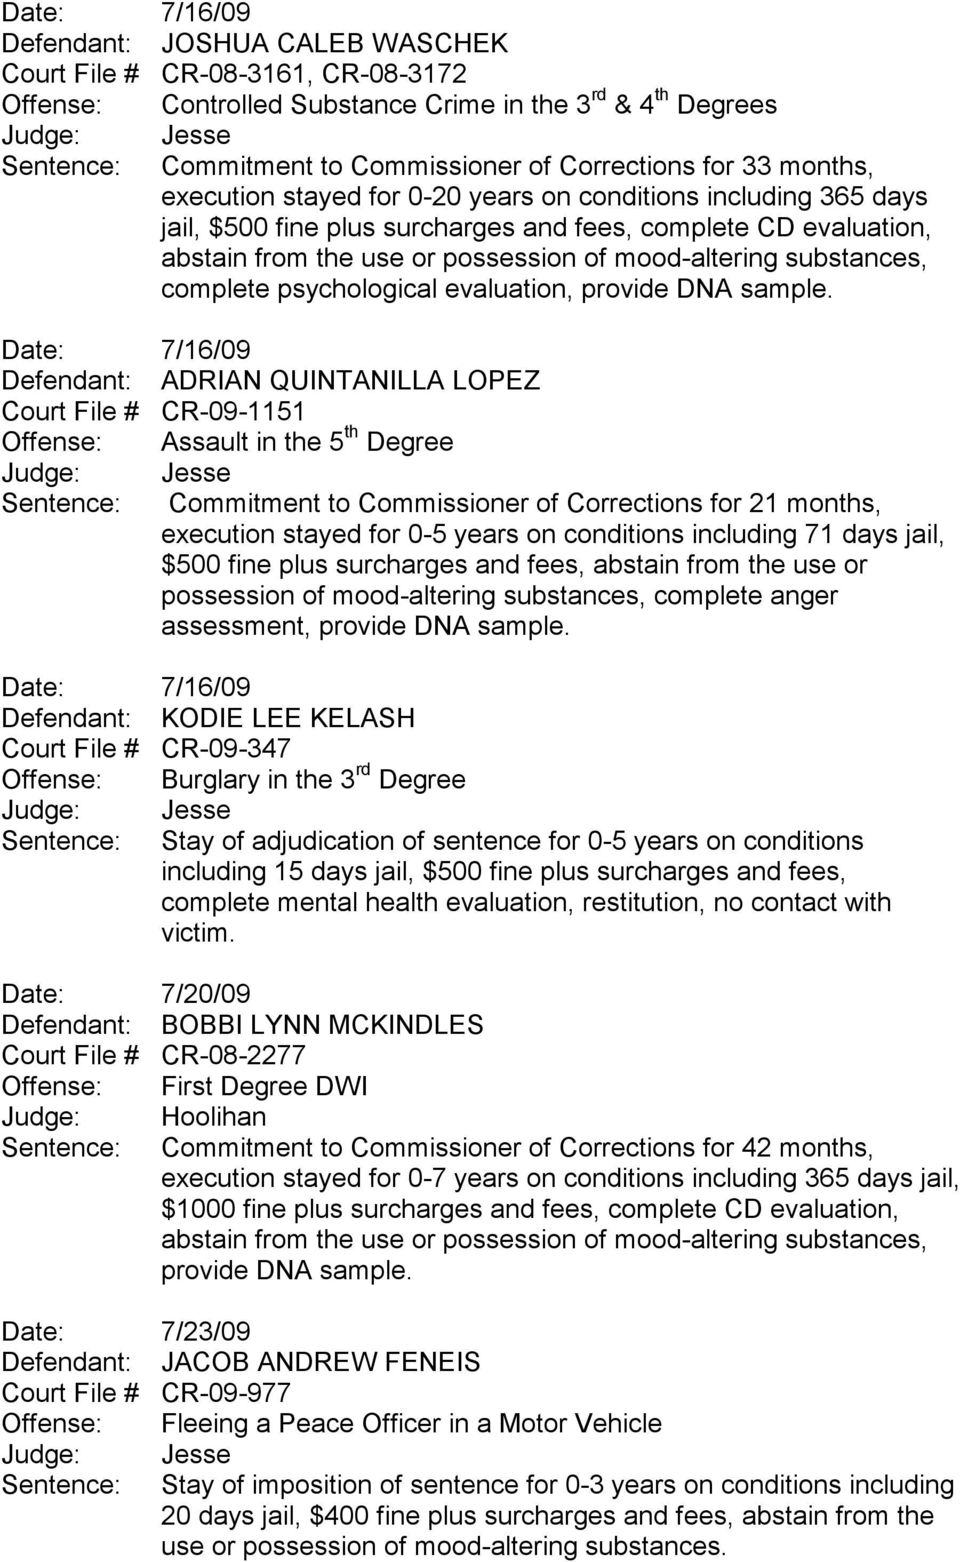 Defendant: ADRIAN QUINTANILLA LOPEZ Court File # CR-09-1151 Offense: Assault in the 5 th Degree Sentence: Commitment to Commissioner of Corrections for 21 months, execution stayed for 0-5 years on